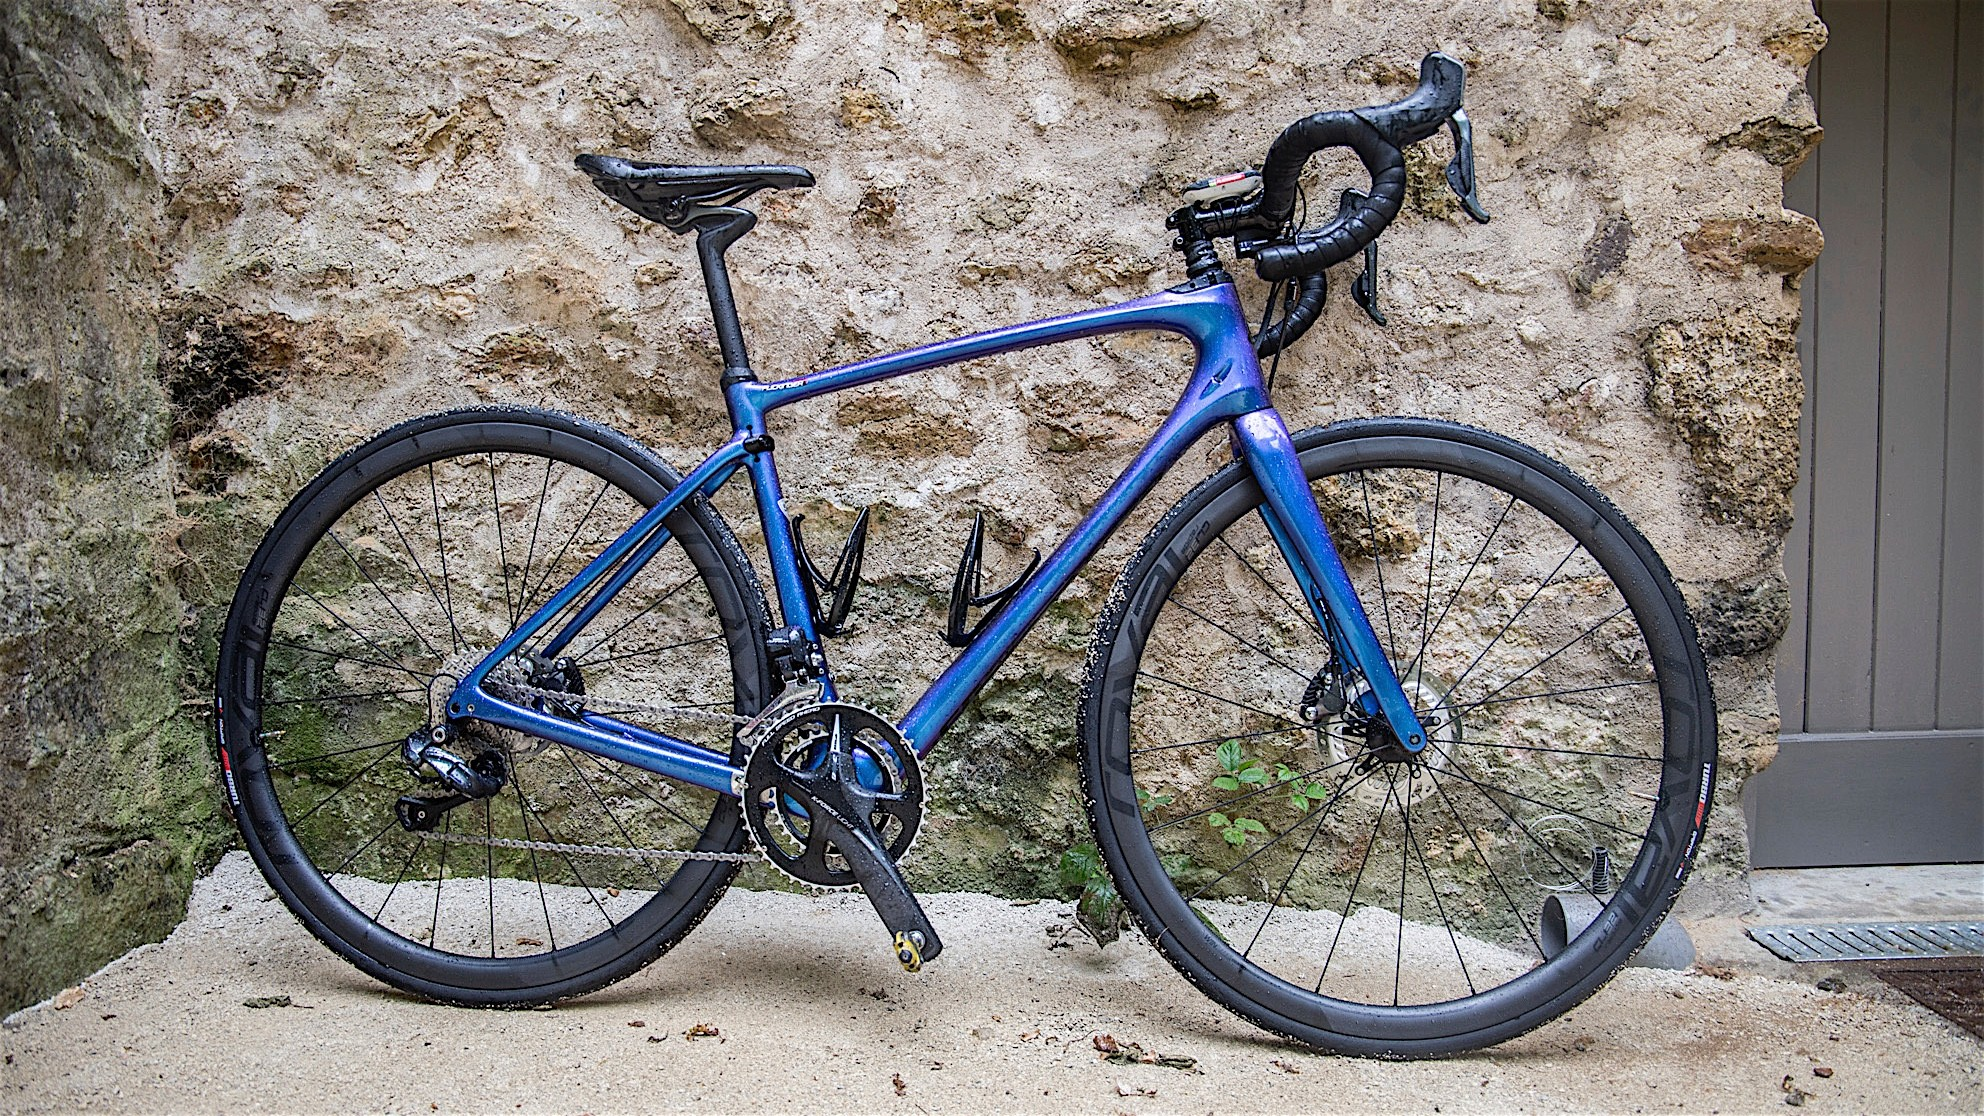 The Specialized Ruby is the female-friendly counterpart to the Roubaix